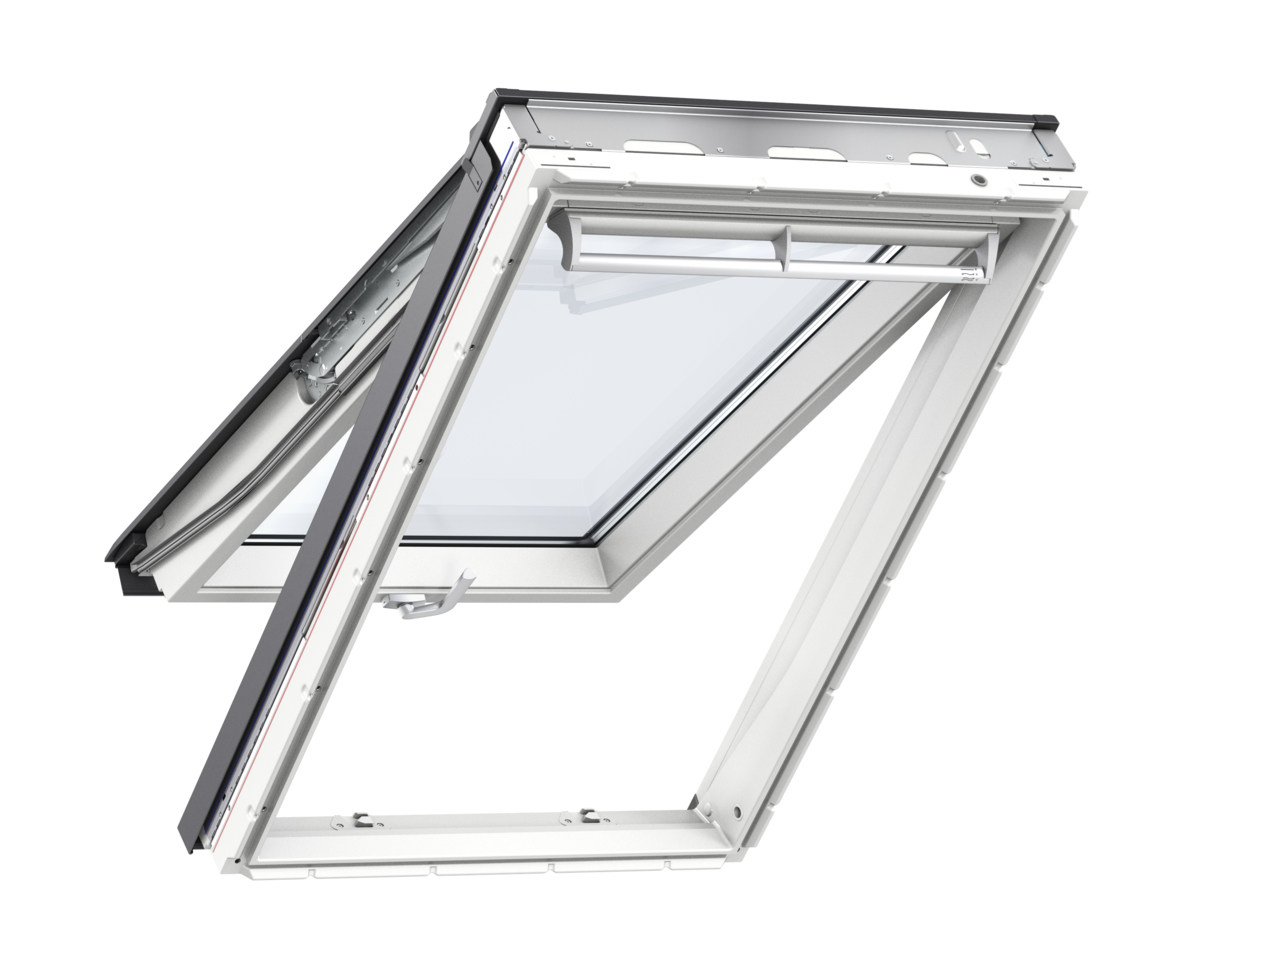 Velux GPU PK08 940 x 1400mm Top Hung 66Pane Roof Window - White Polyurethane